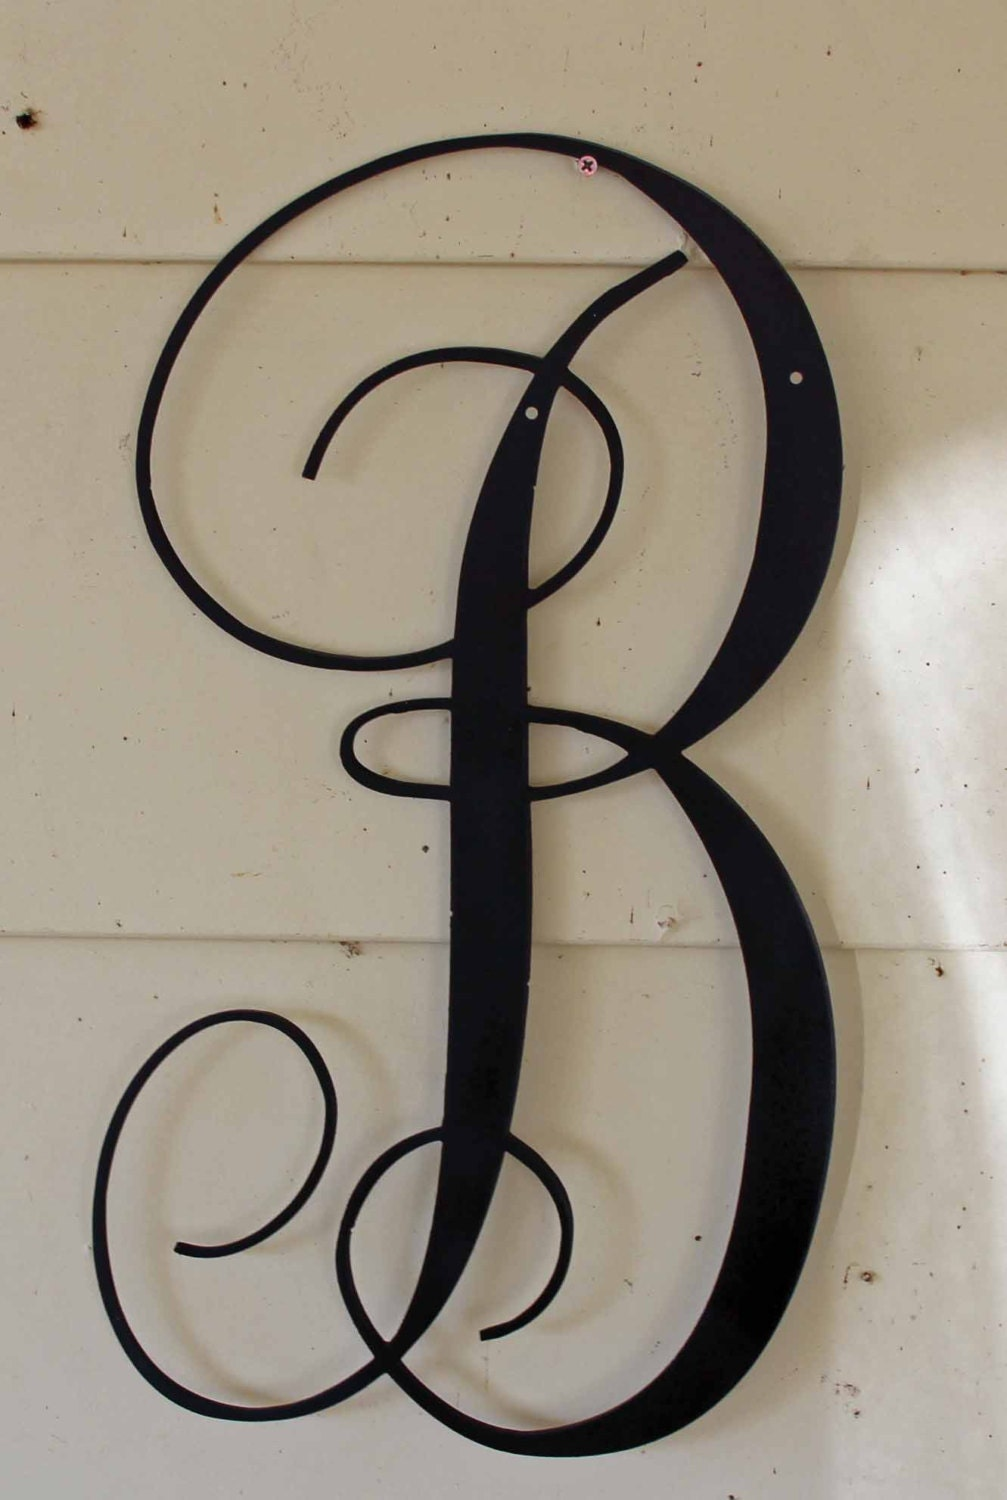 Metal Alphabet Letters For Wall Captivating 22 Inch Black Script Metal Letter B Door Or Wall Hanging Inspiration